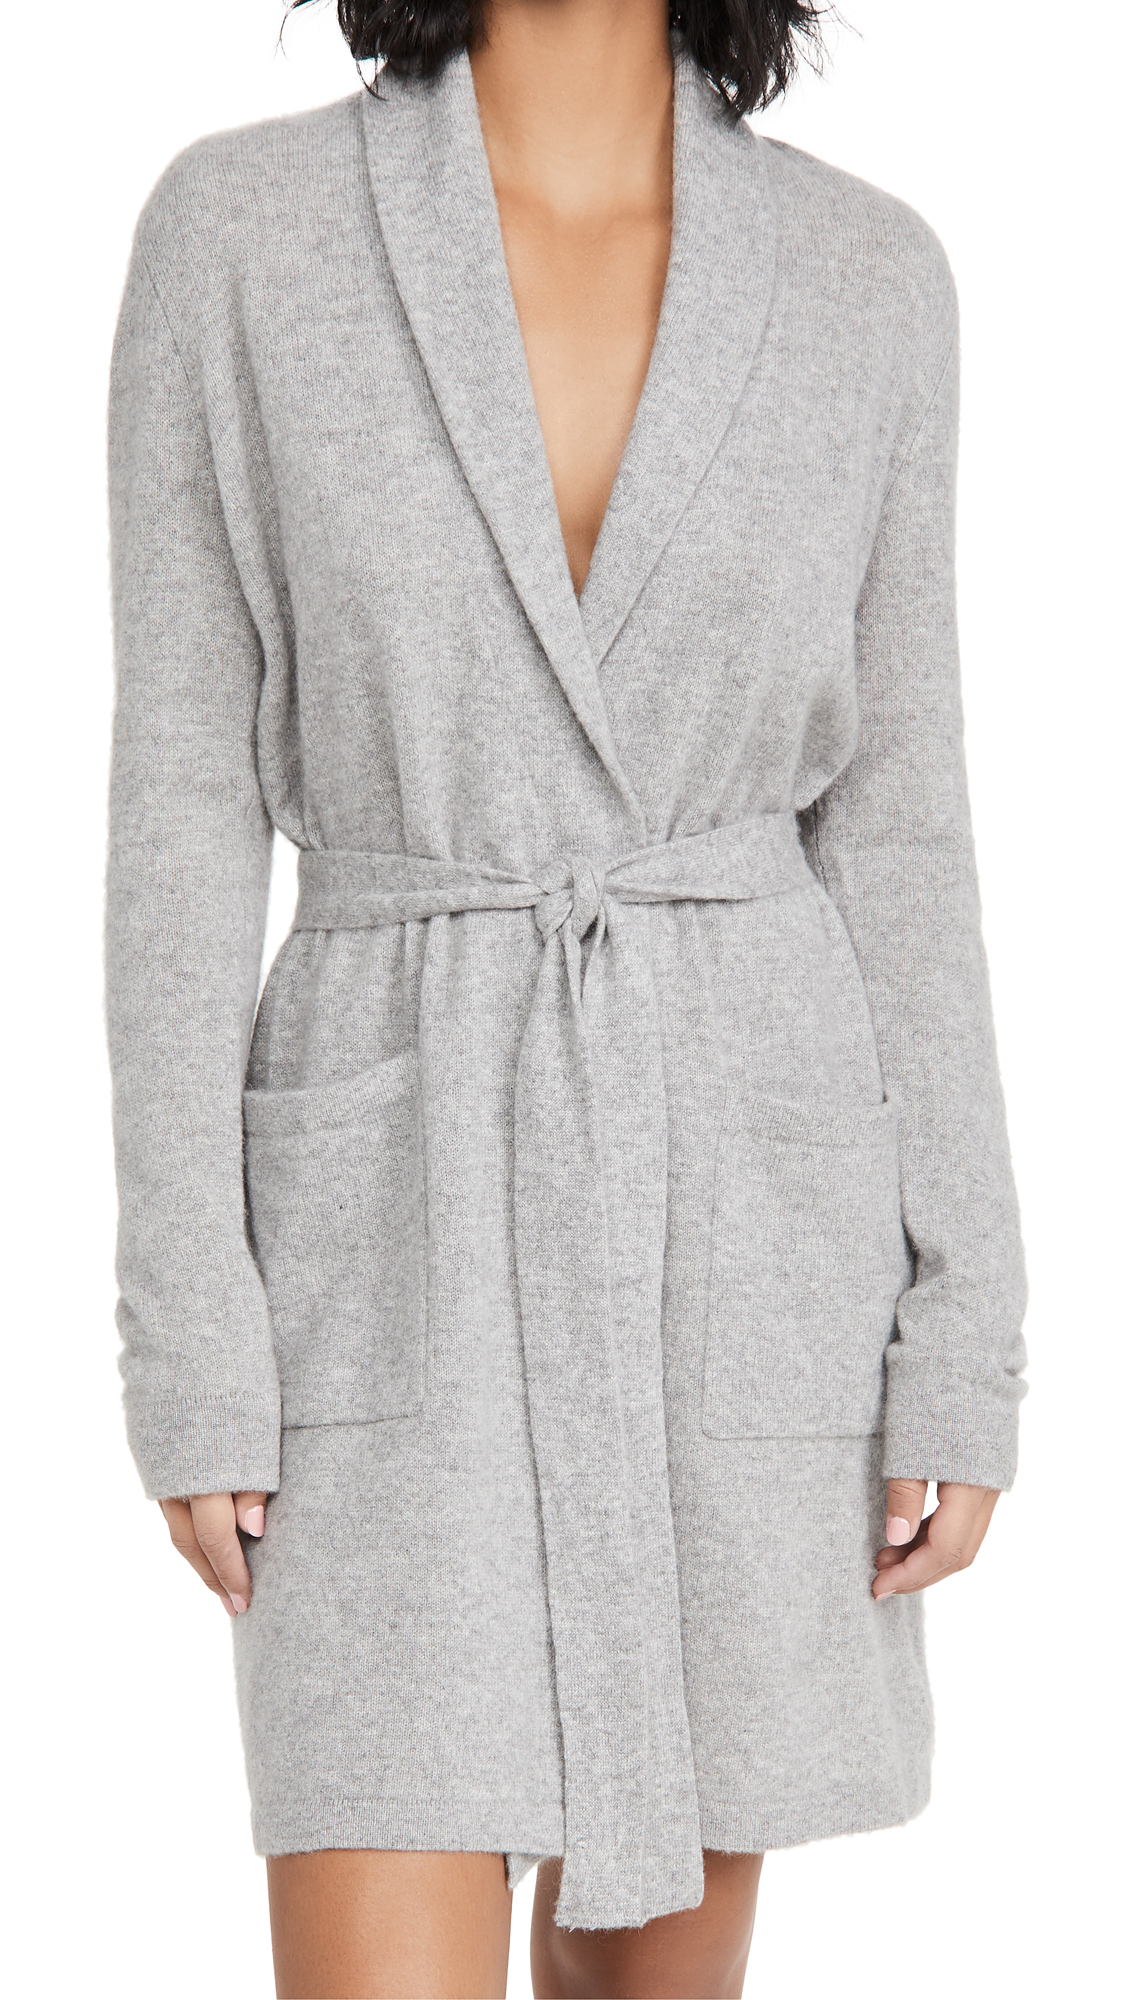 White + Warren Cashmere Short Robe